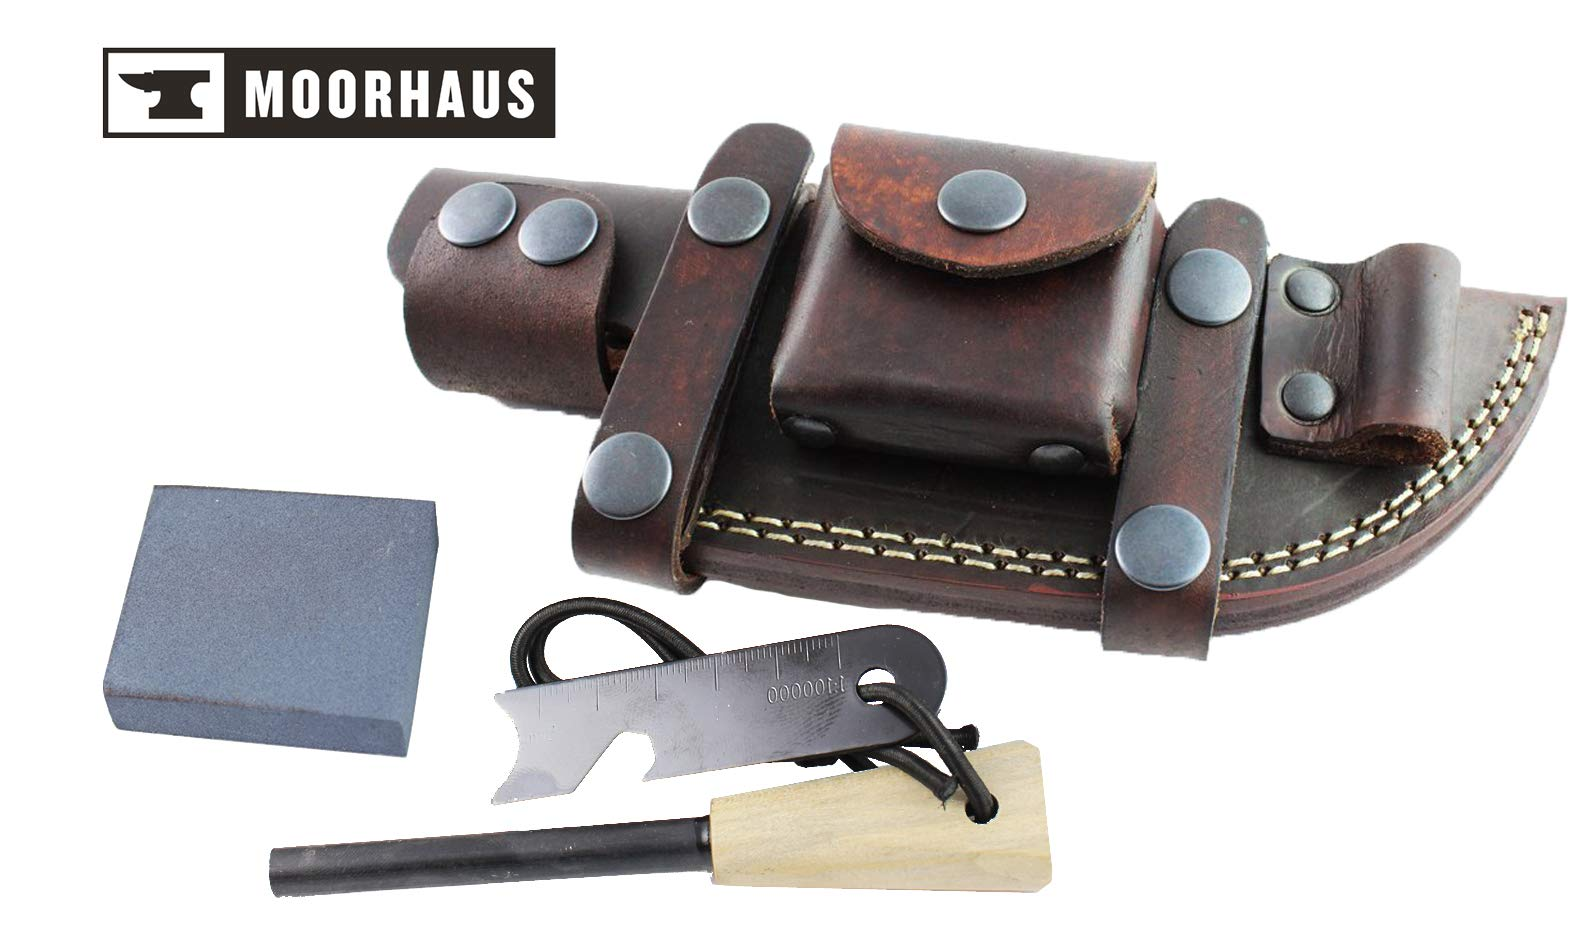 Moorhaus Handcrafted Leather Knife Sheath for Tracker, Bushcraft/skinner Knife Horizontal Right or Left handed Scout Style (Full Ferro Left Brown)